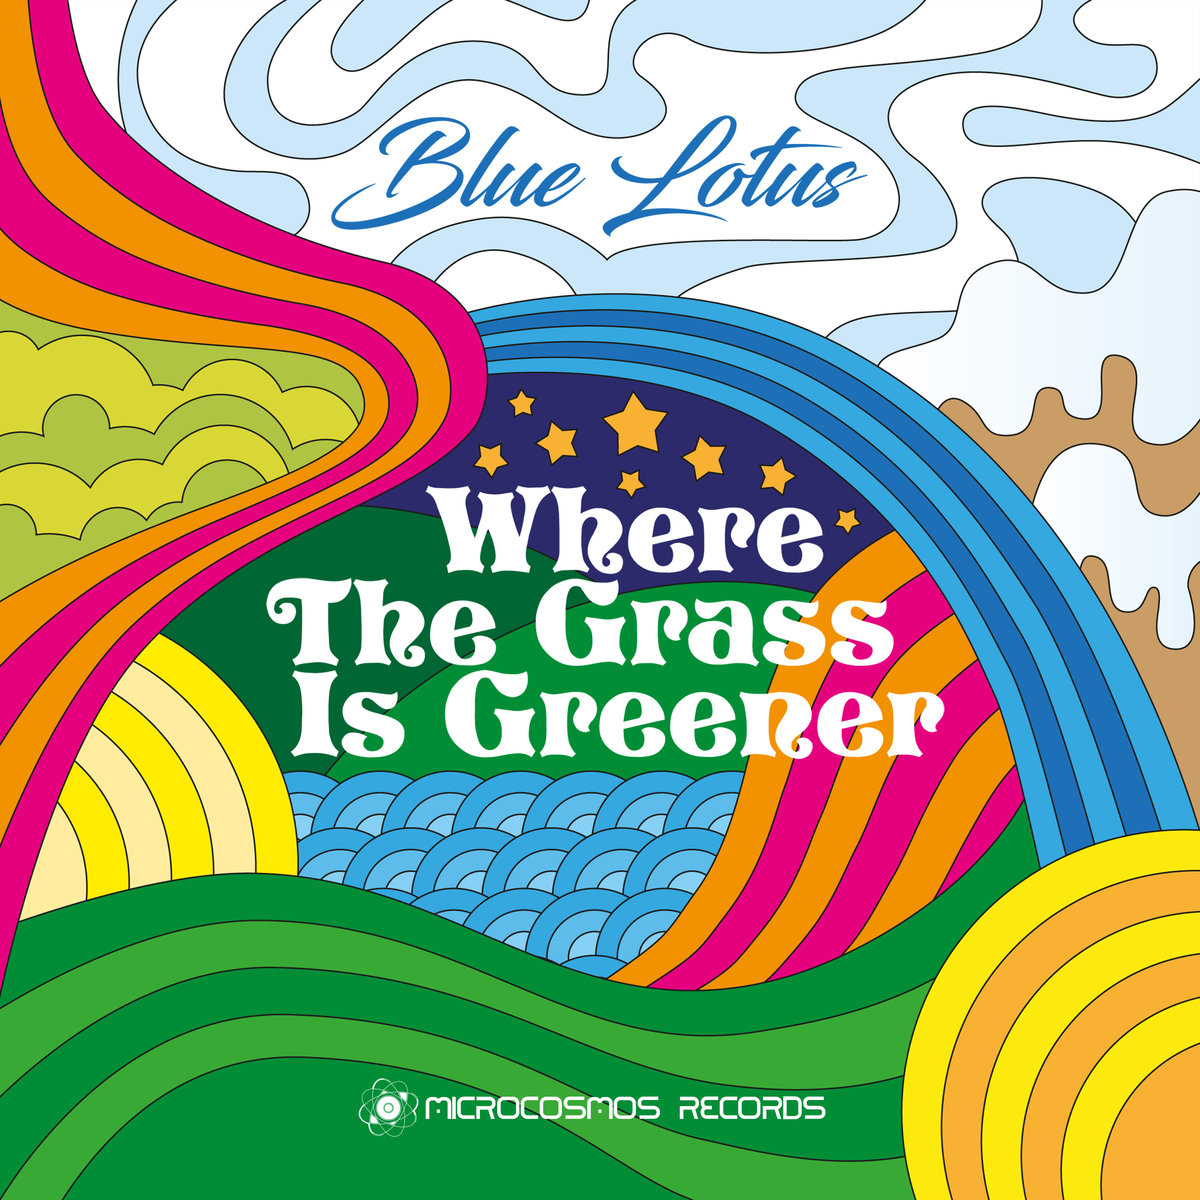 Blue Lotus - Blue Lotus @ 'Where The Grass Is Greener' album (ambient, chill-out)